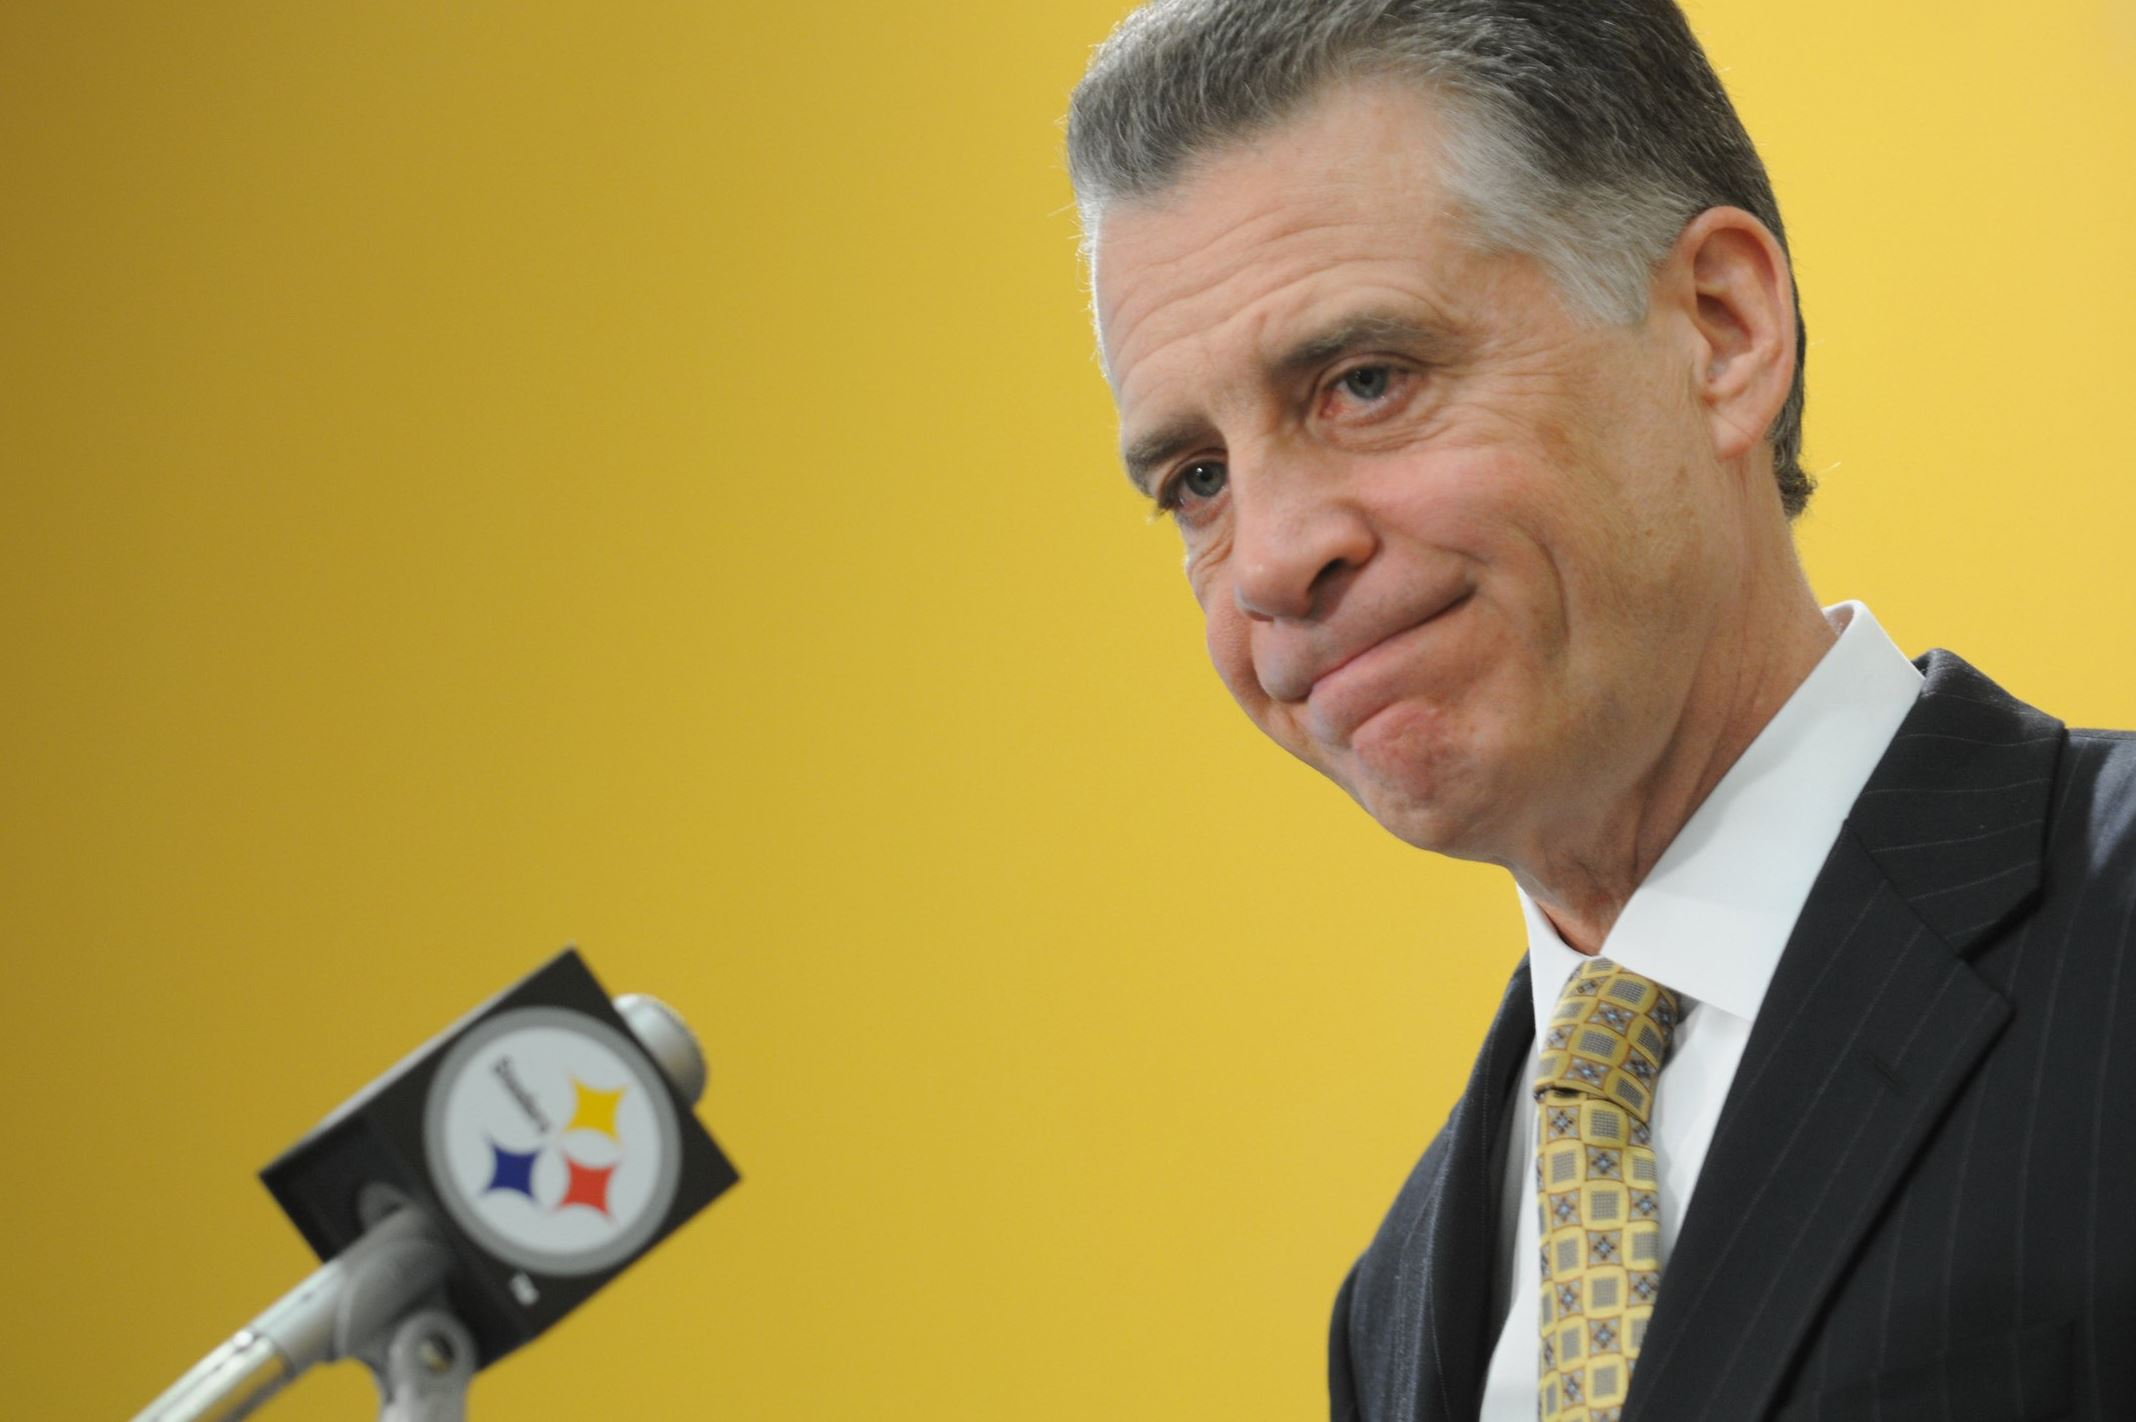 Art Rooney II Steelers owner Rooney Giants coowner Mara say probe of